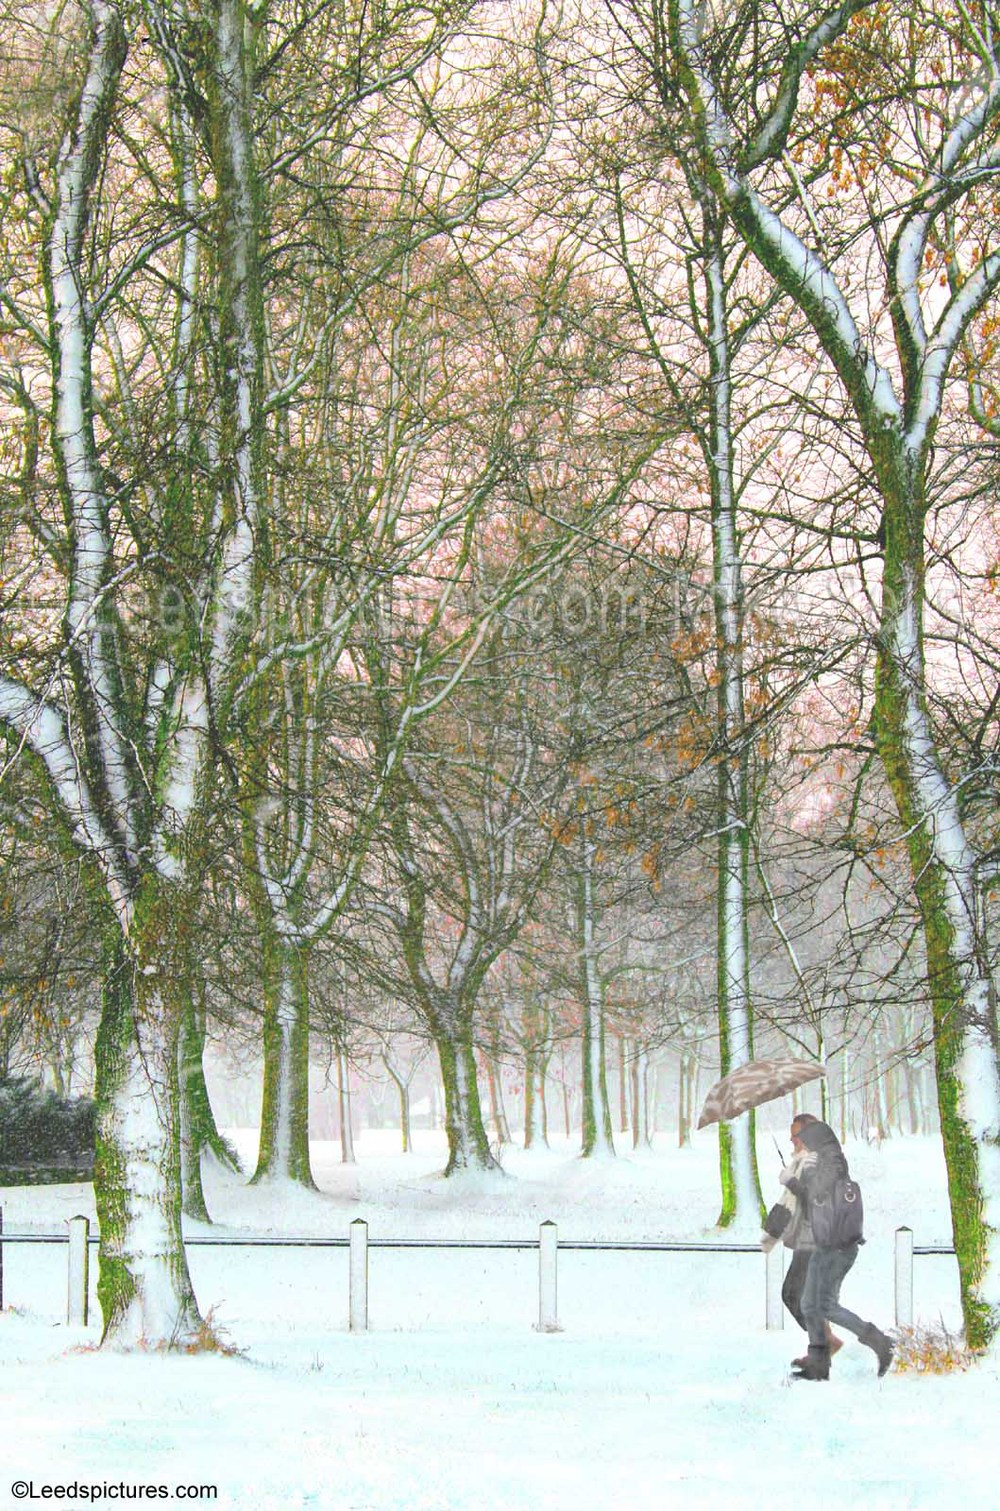 Woodhouse Moor, tall trees, snow, two walkers with umbrella    Fine snow as the sun begins to set beyond the park